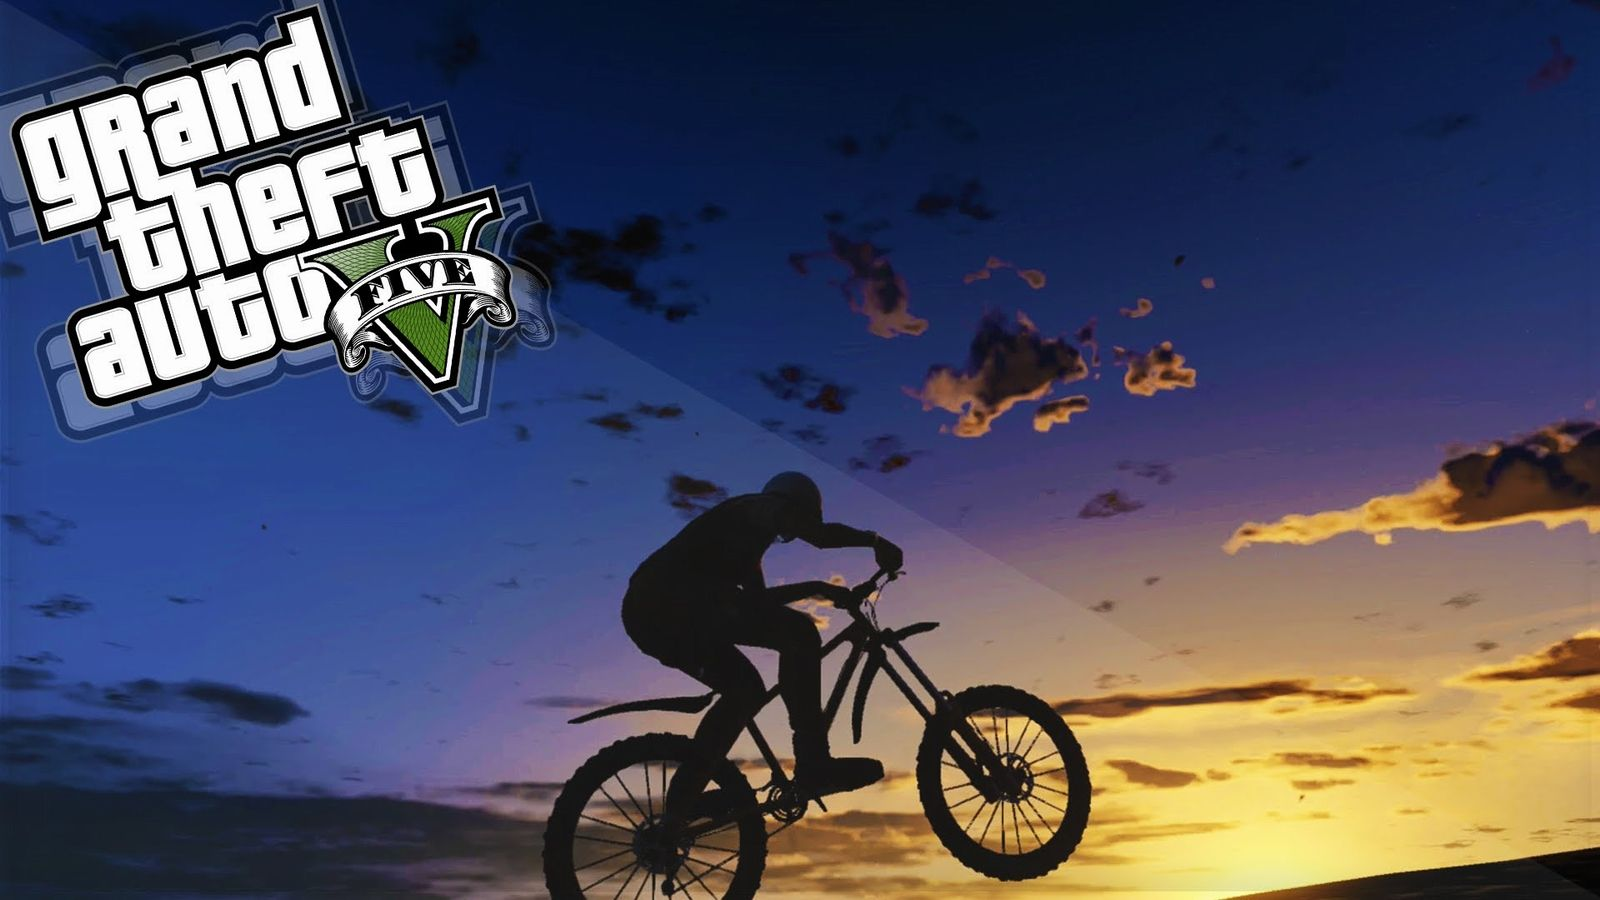 GTA 5 cool Wallpaper